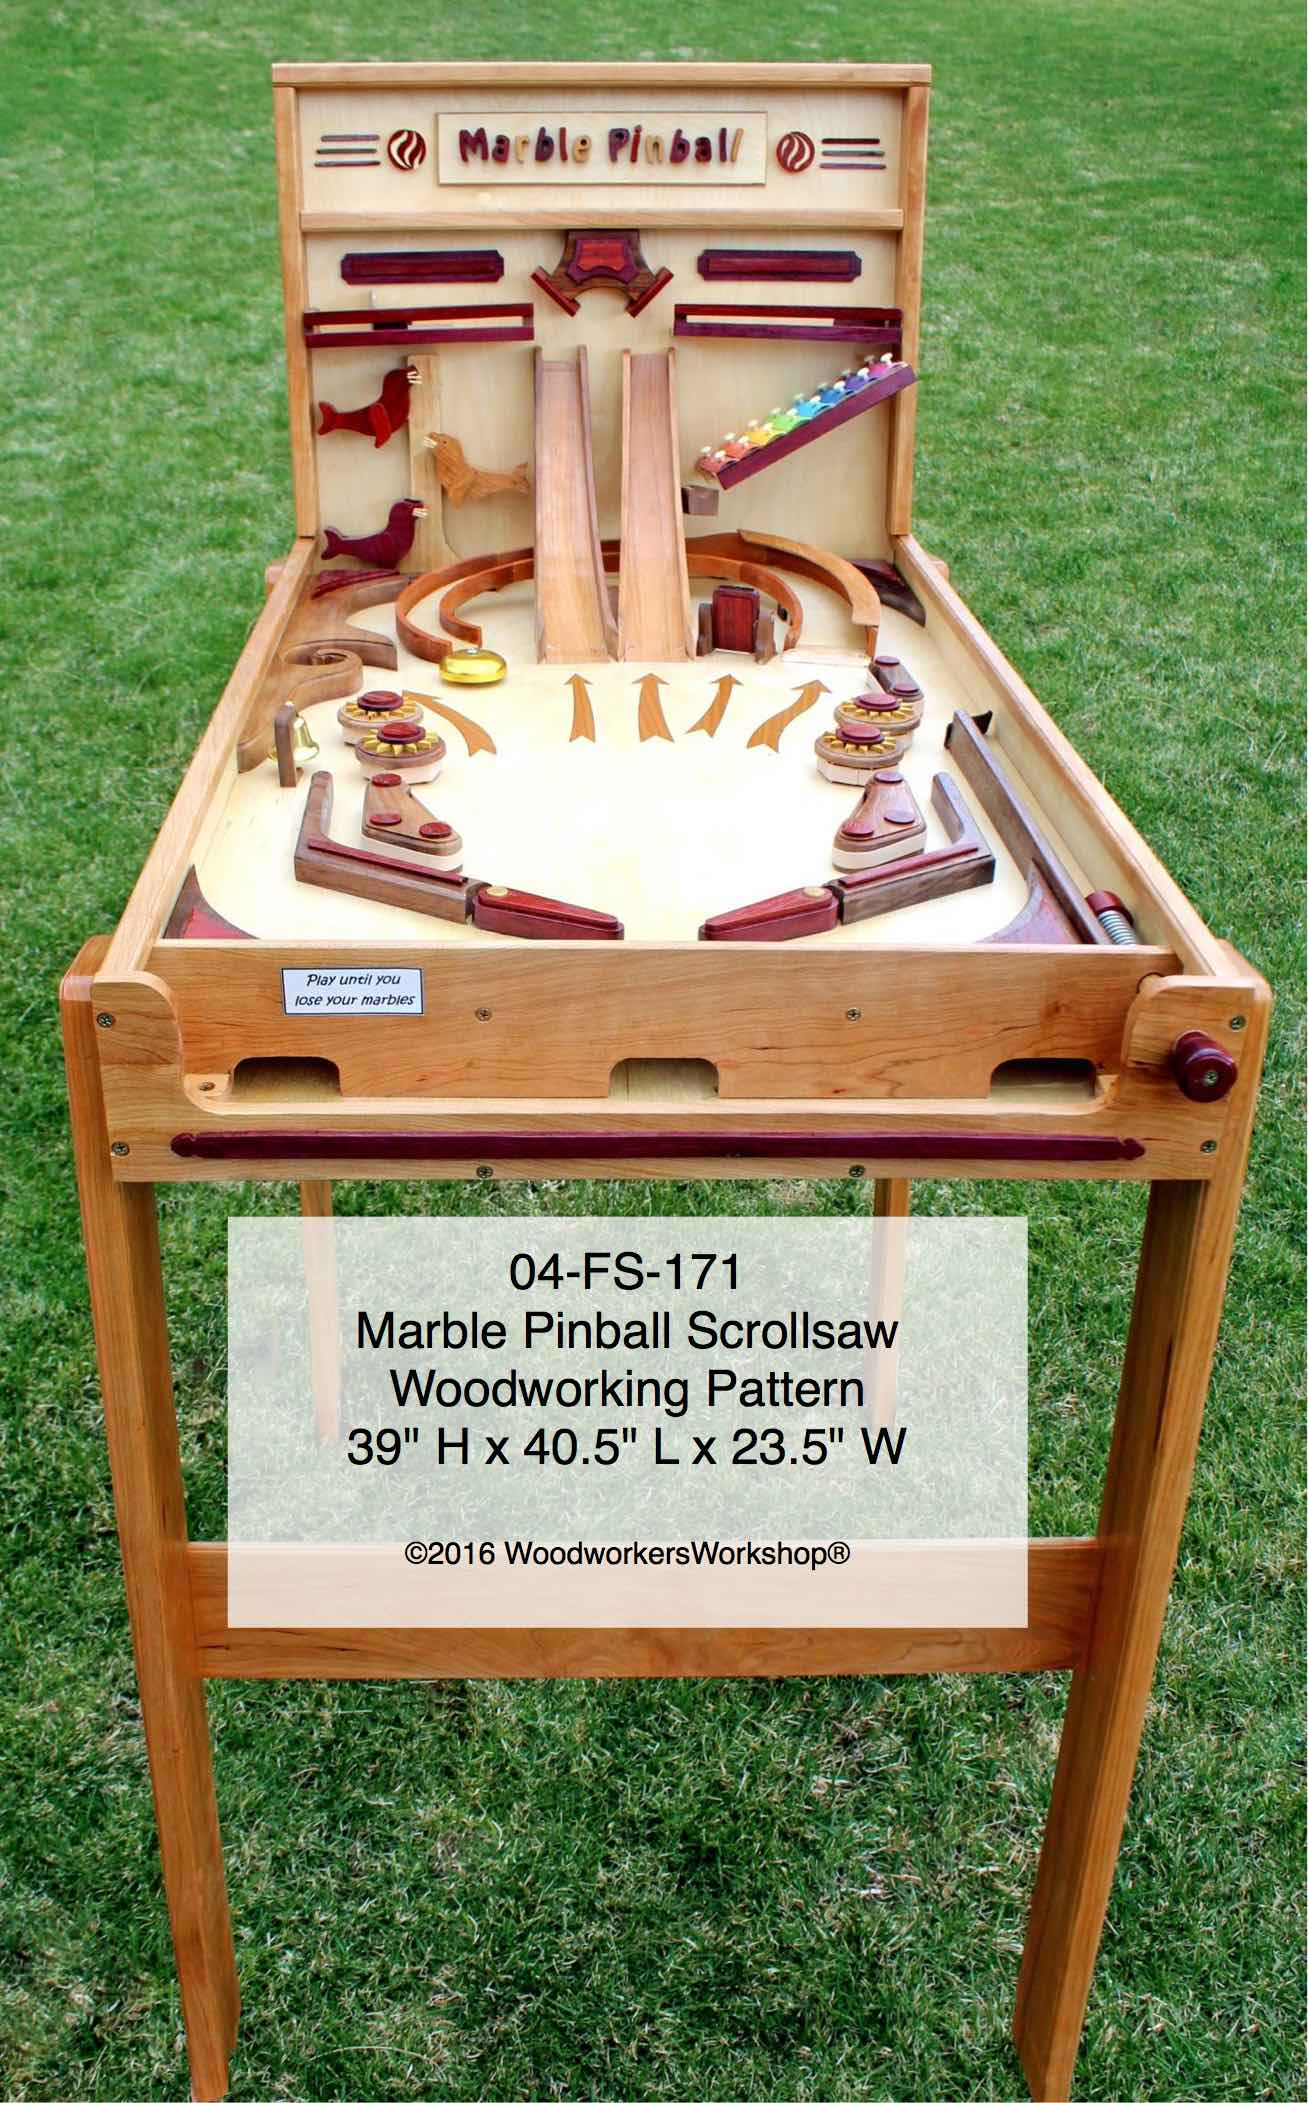 Marble Pinball Machine Scrollsaw Woodworking Plan woodworking plan